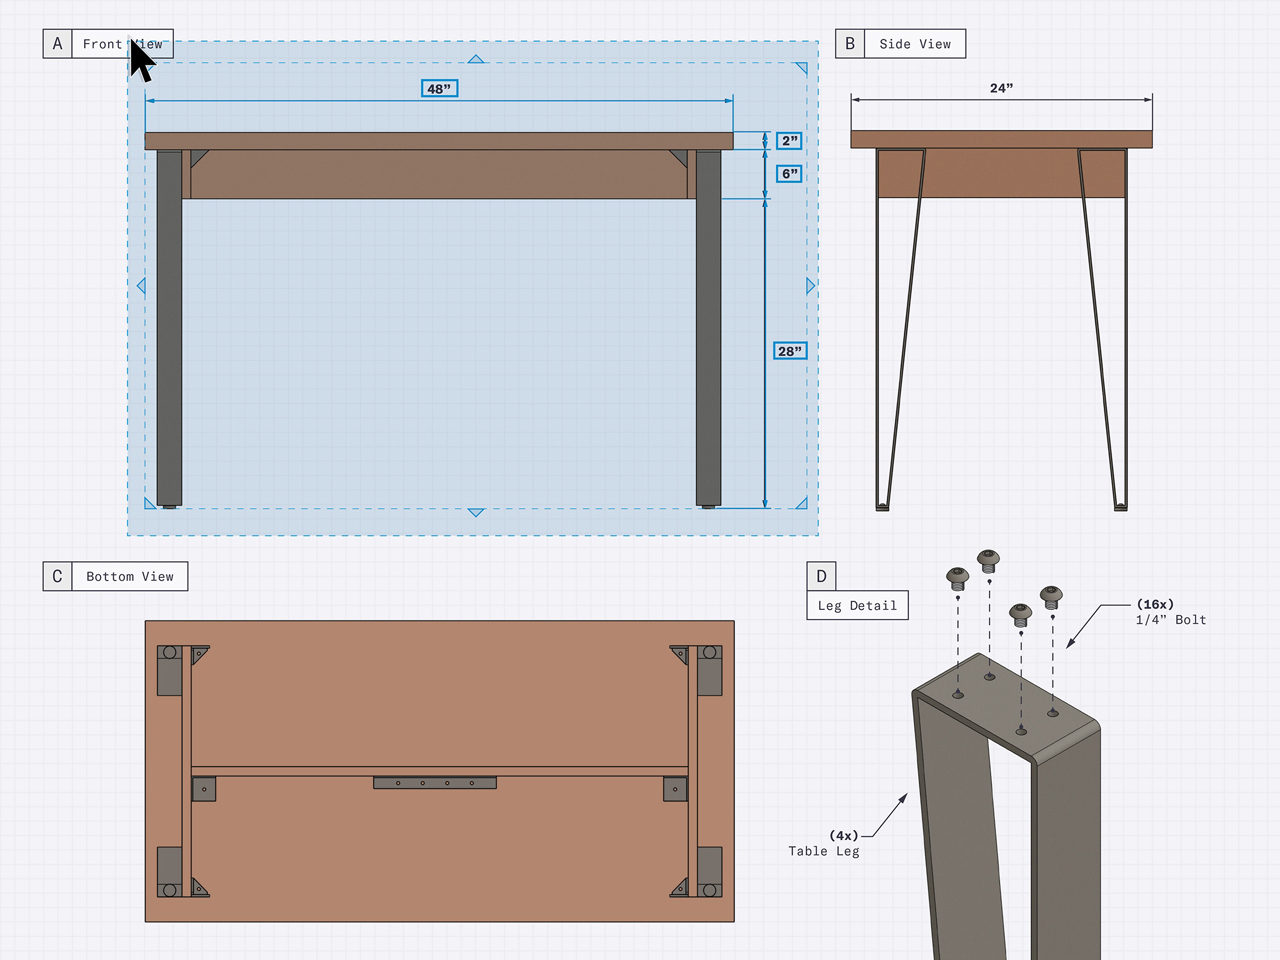 sketchup 2020.1 update layout